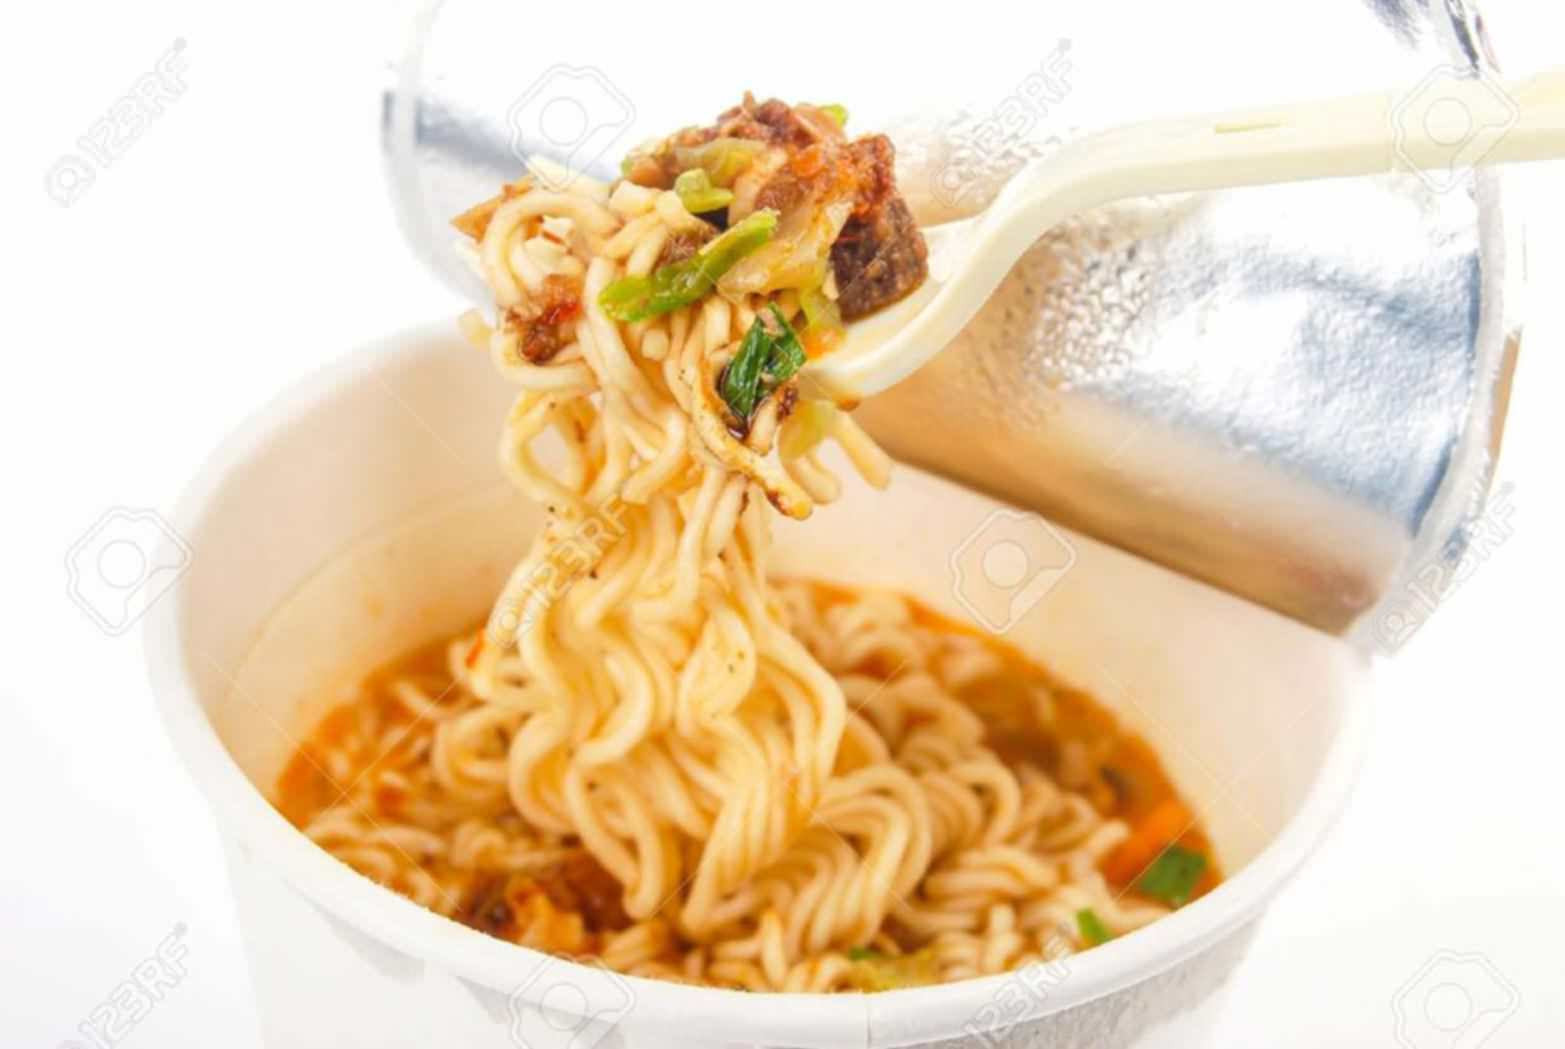 Are Ramen Noodles Unhealthy  Ingre nts That Make Instant Noodles Unhealthy